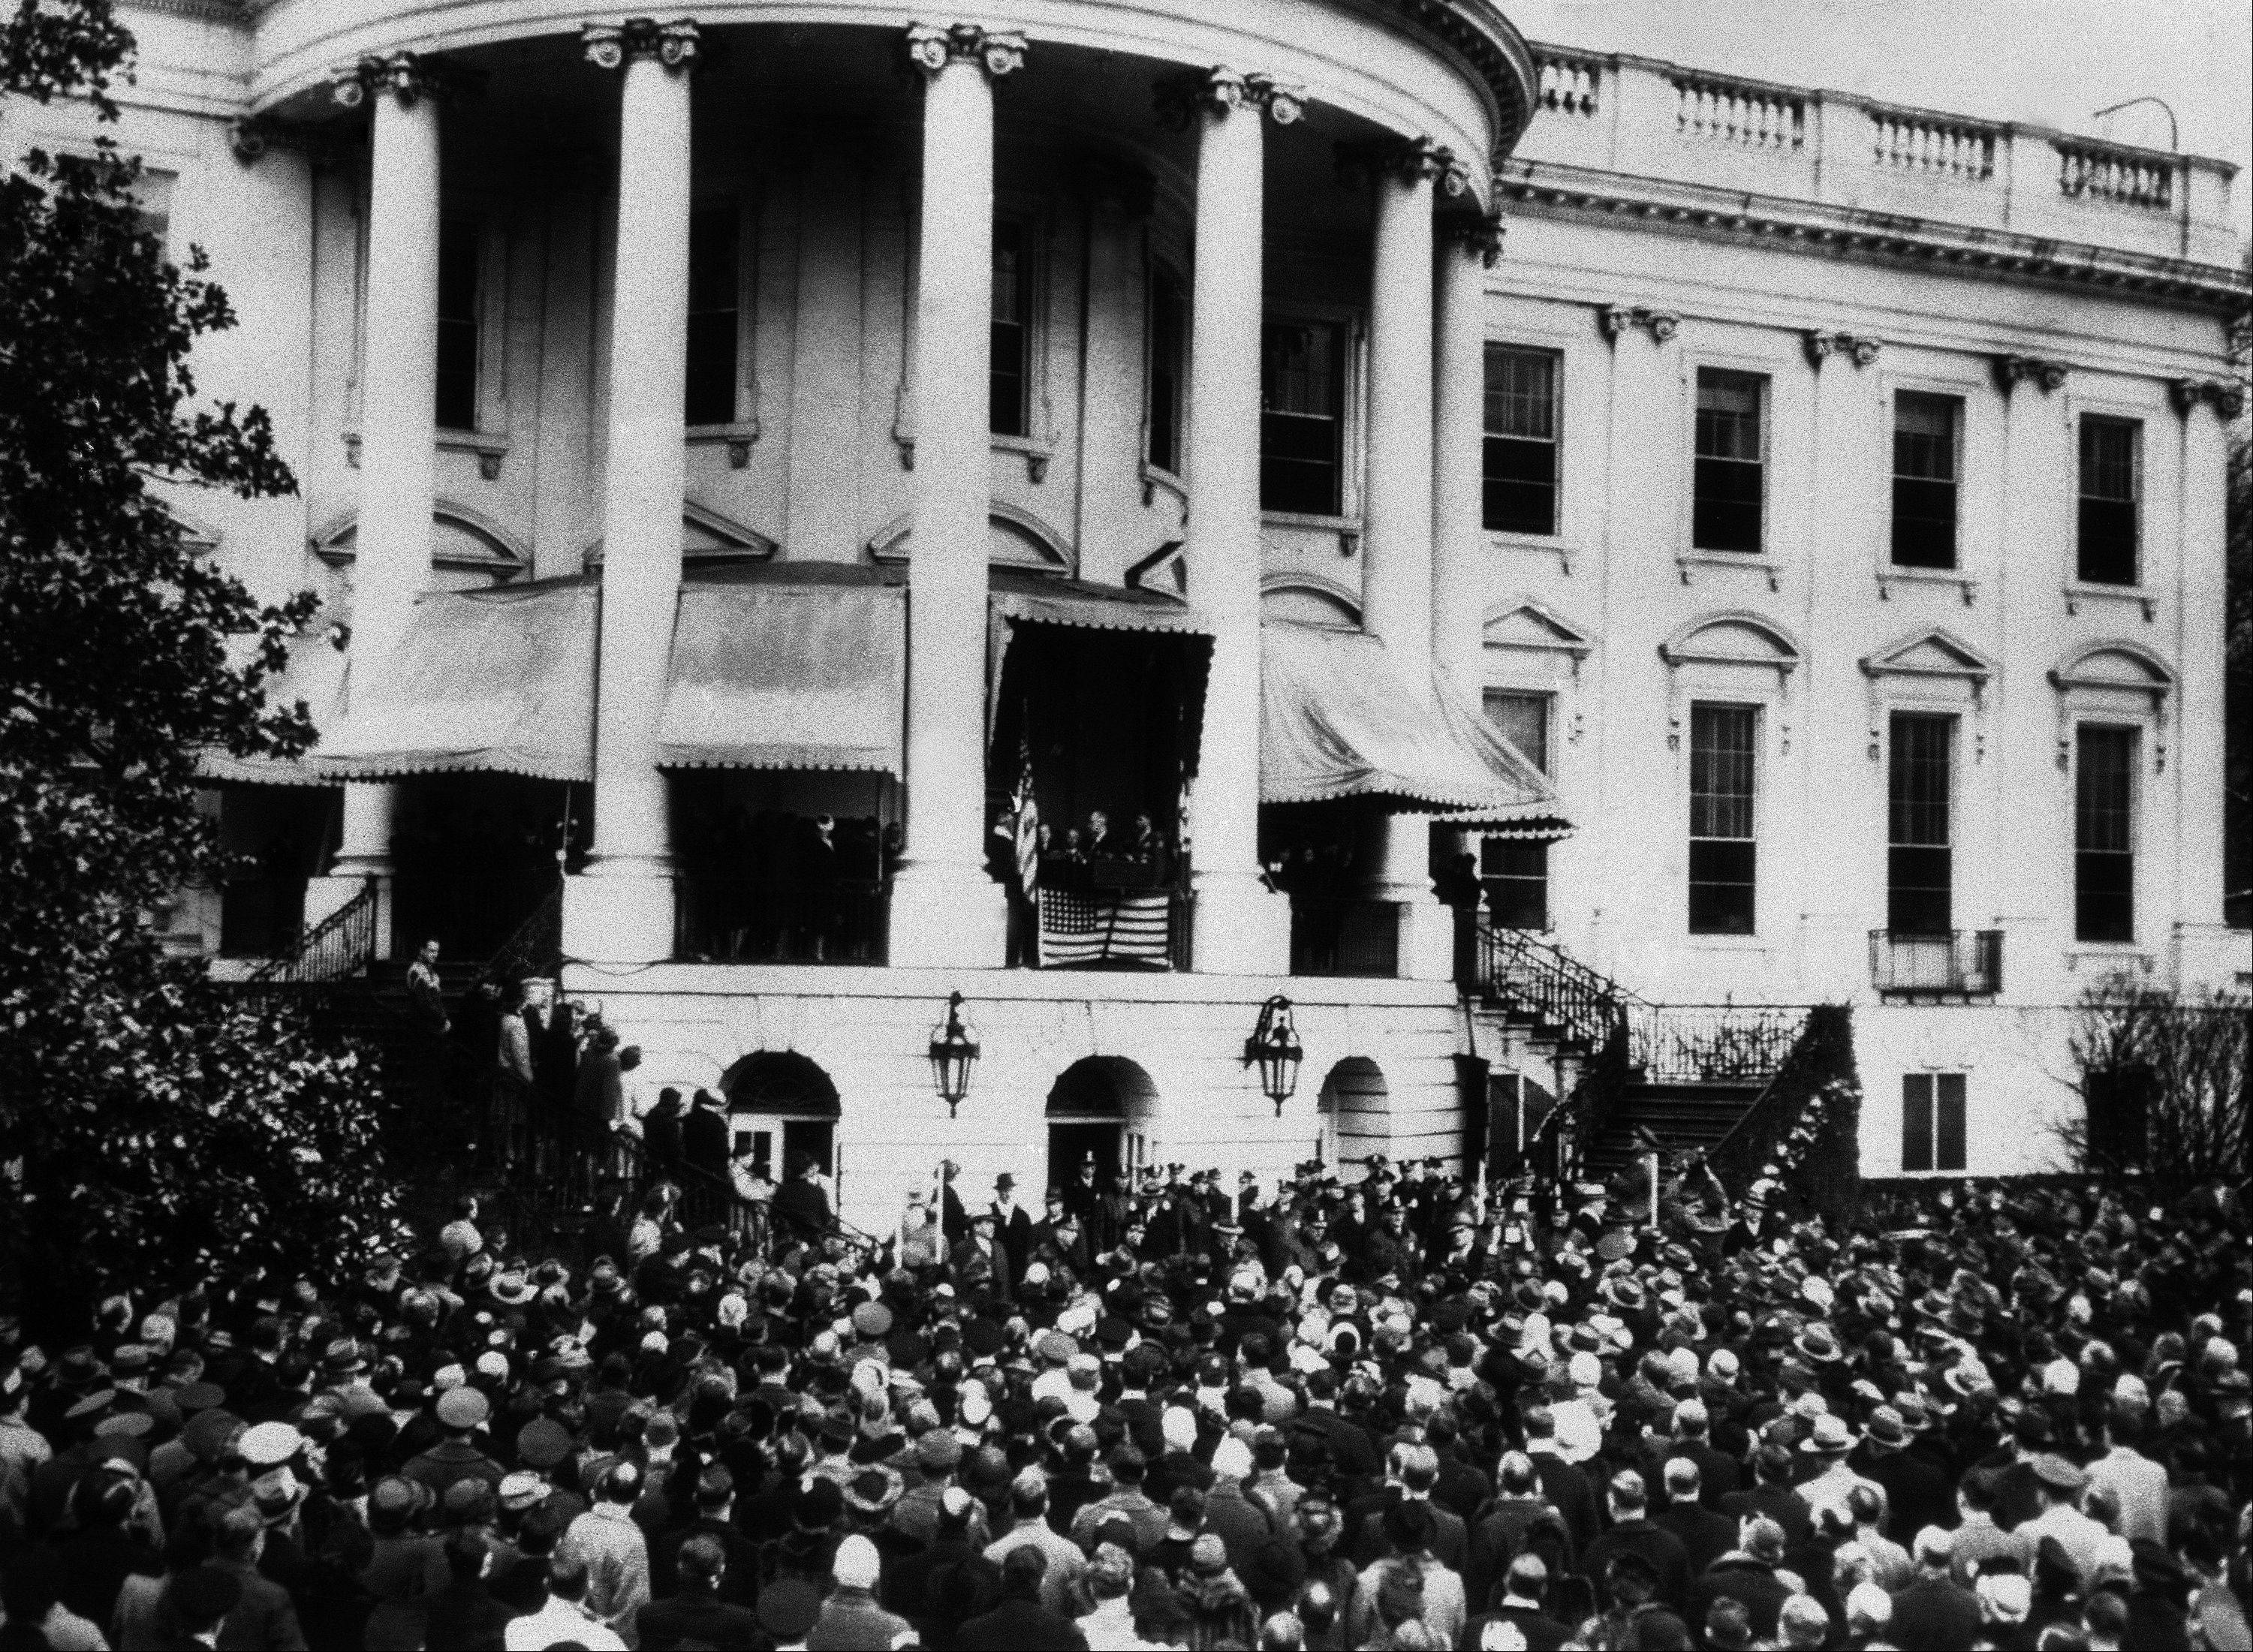 Over 7,000 people stood in the snow-covered grounds at the back of the White House to watch President Roosevelt inaugurated in Washington, on Jan. 20, 1945, for his fourth term. Wartime Austerity was the keynote of the proceedings and the whole ceremony was completed in under 15 minutes.